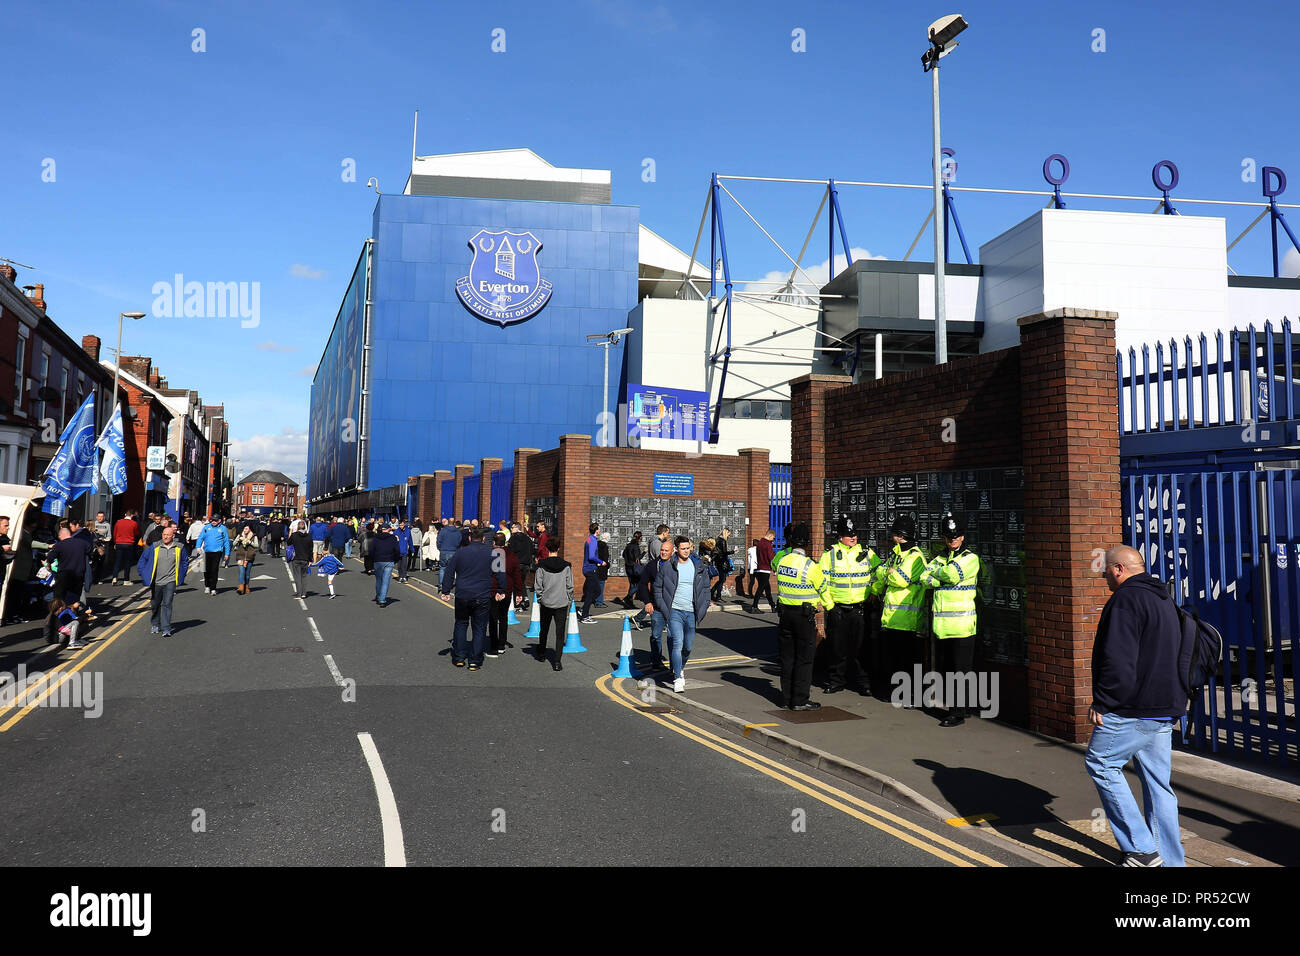 London, UK. 29th September 2018. A general view of Goodison Park before the Premier League match between Everton and Fulham at Goodison Park on September 29th 2018 in Liverpool, England. Credit: PHC Images/Alamy Live News Stock Photo